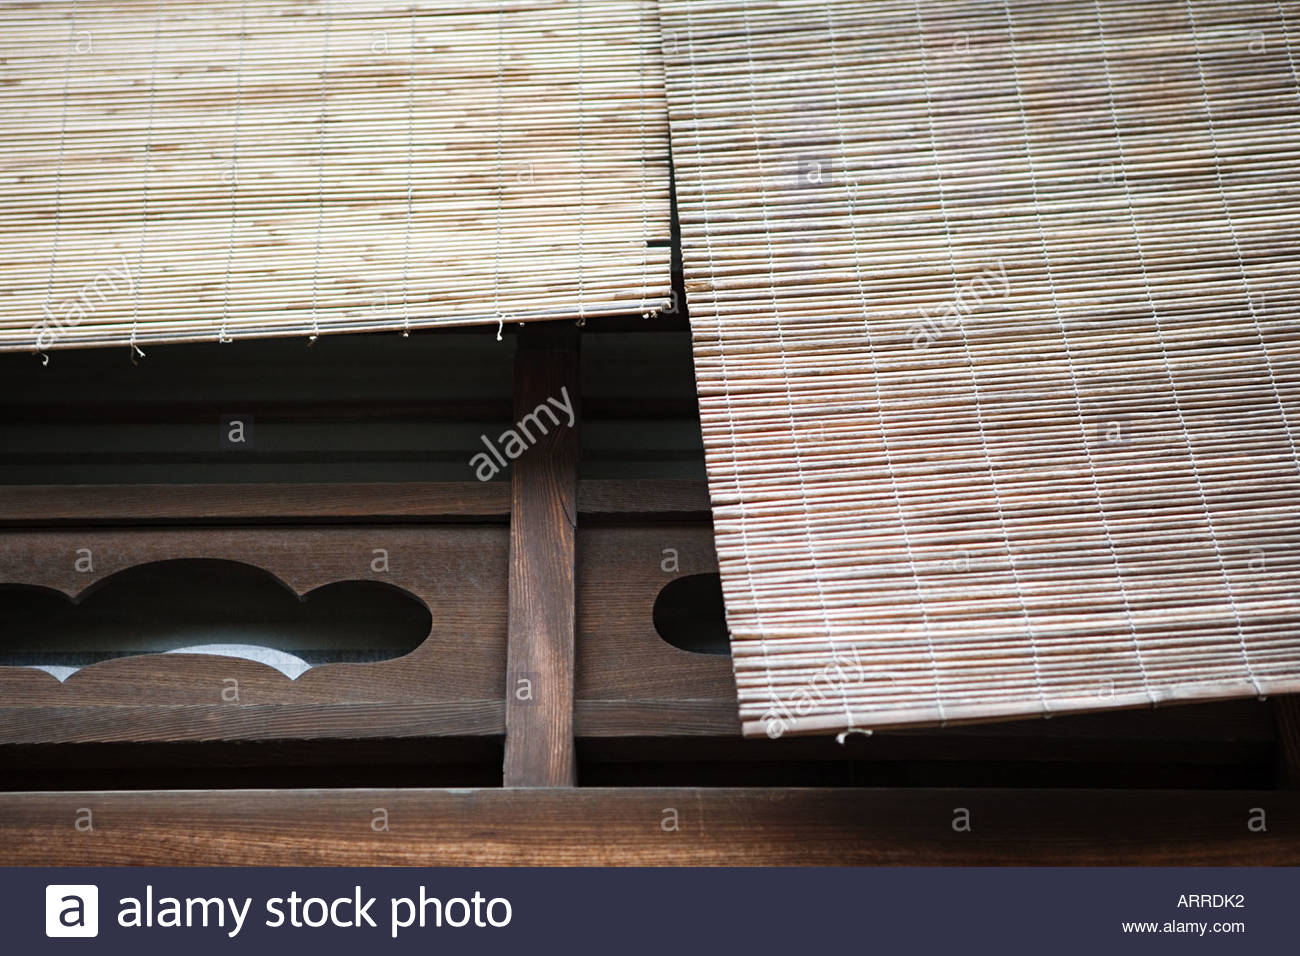 Wooden blinds - Stock Image